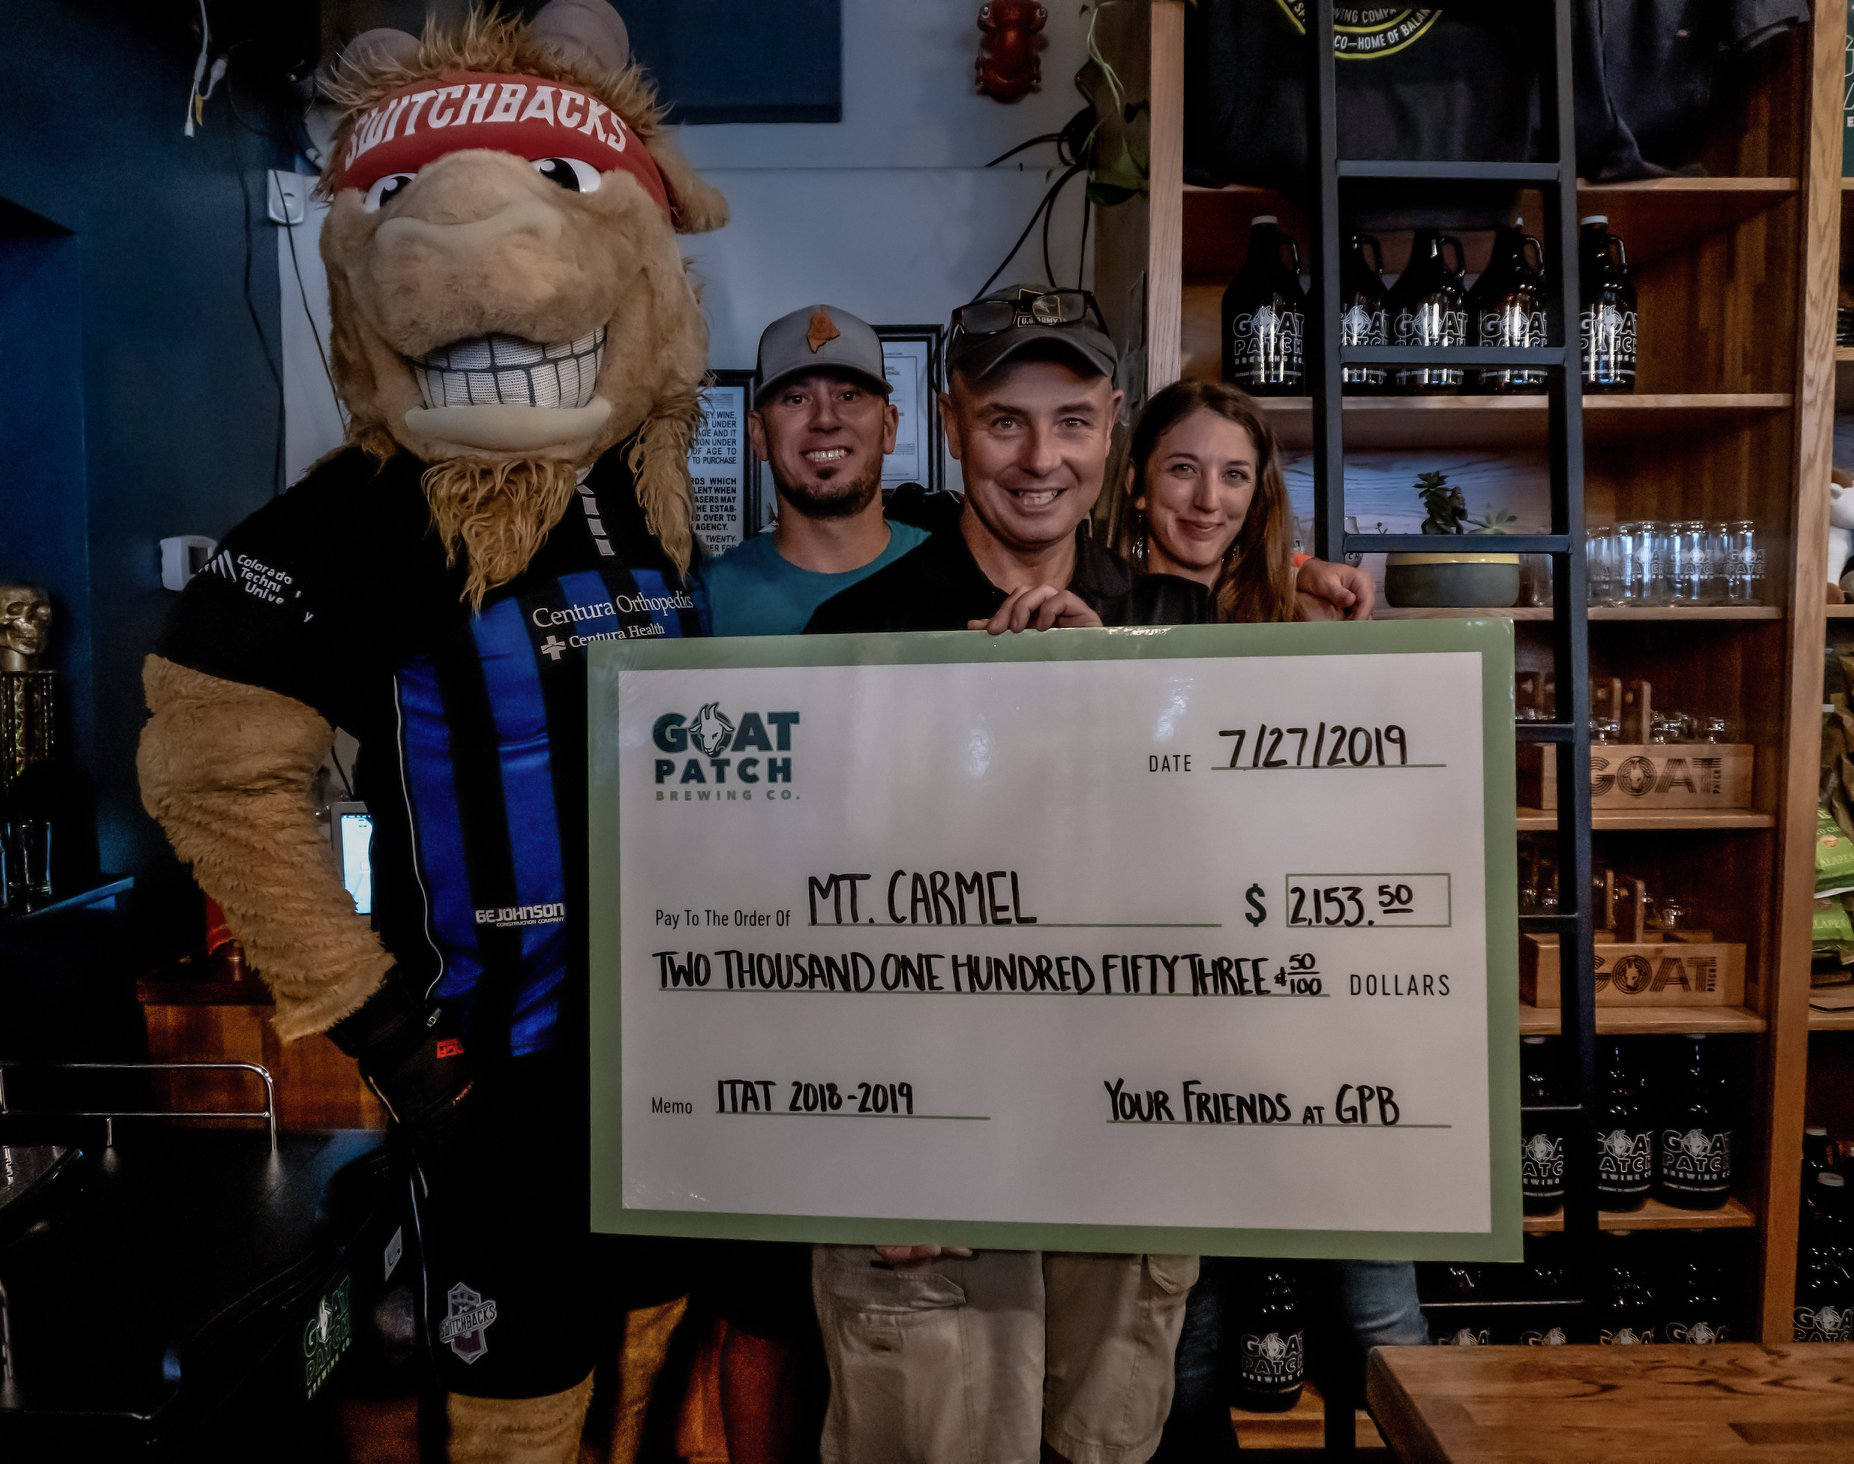 Mt. Carmel also was presented with a check from the It Takes A Tribe Red Ale proceeds. Photo courtesy Goat Patch Brewing.